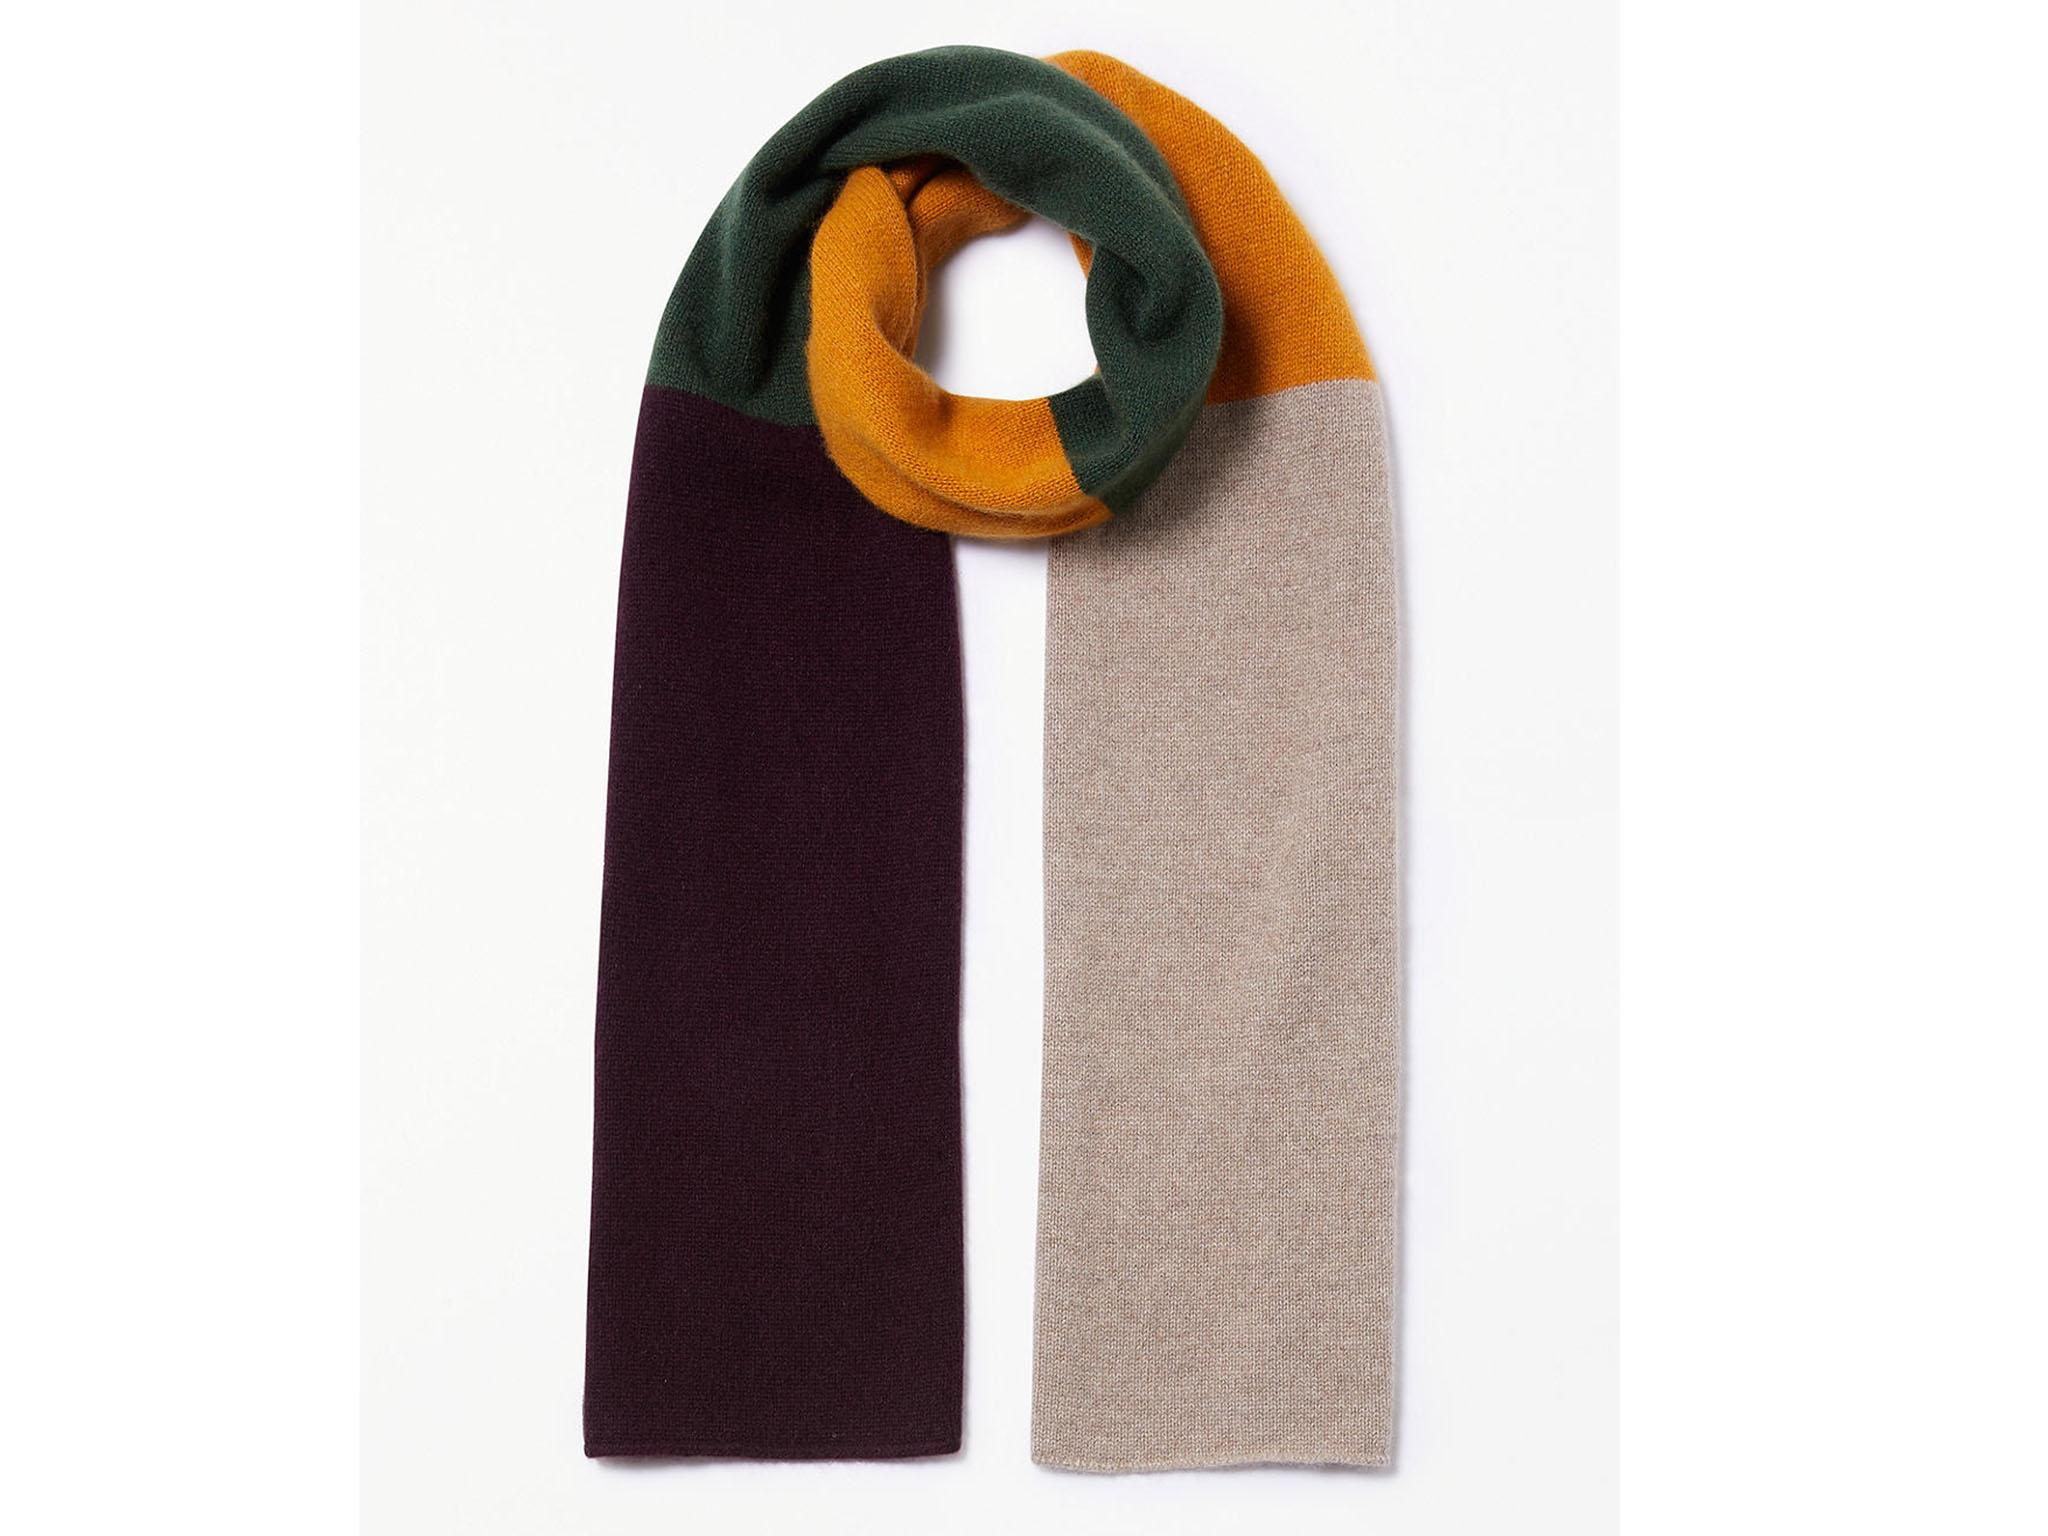 072a81be74be1 9 best men's scarves | The Independent